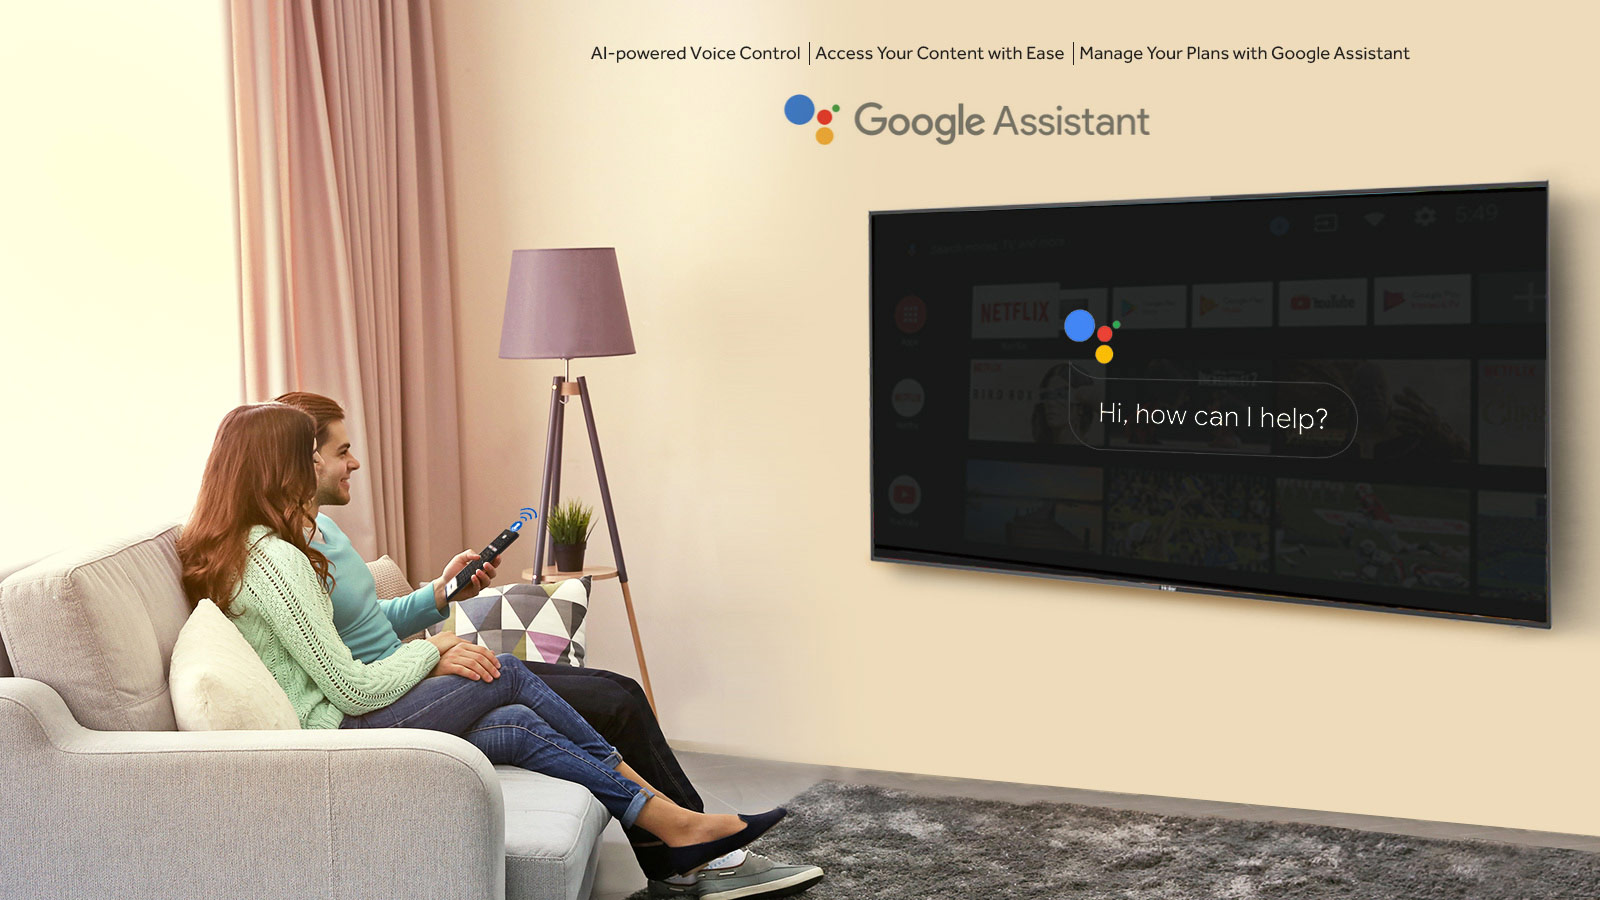 Intelligent-Voice-control-by-Google-Assistant